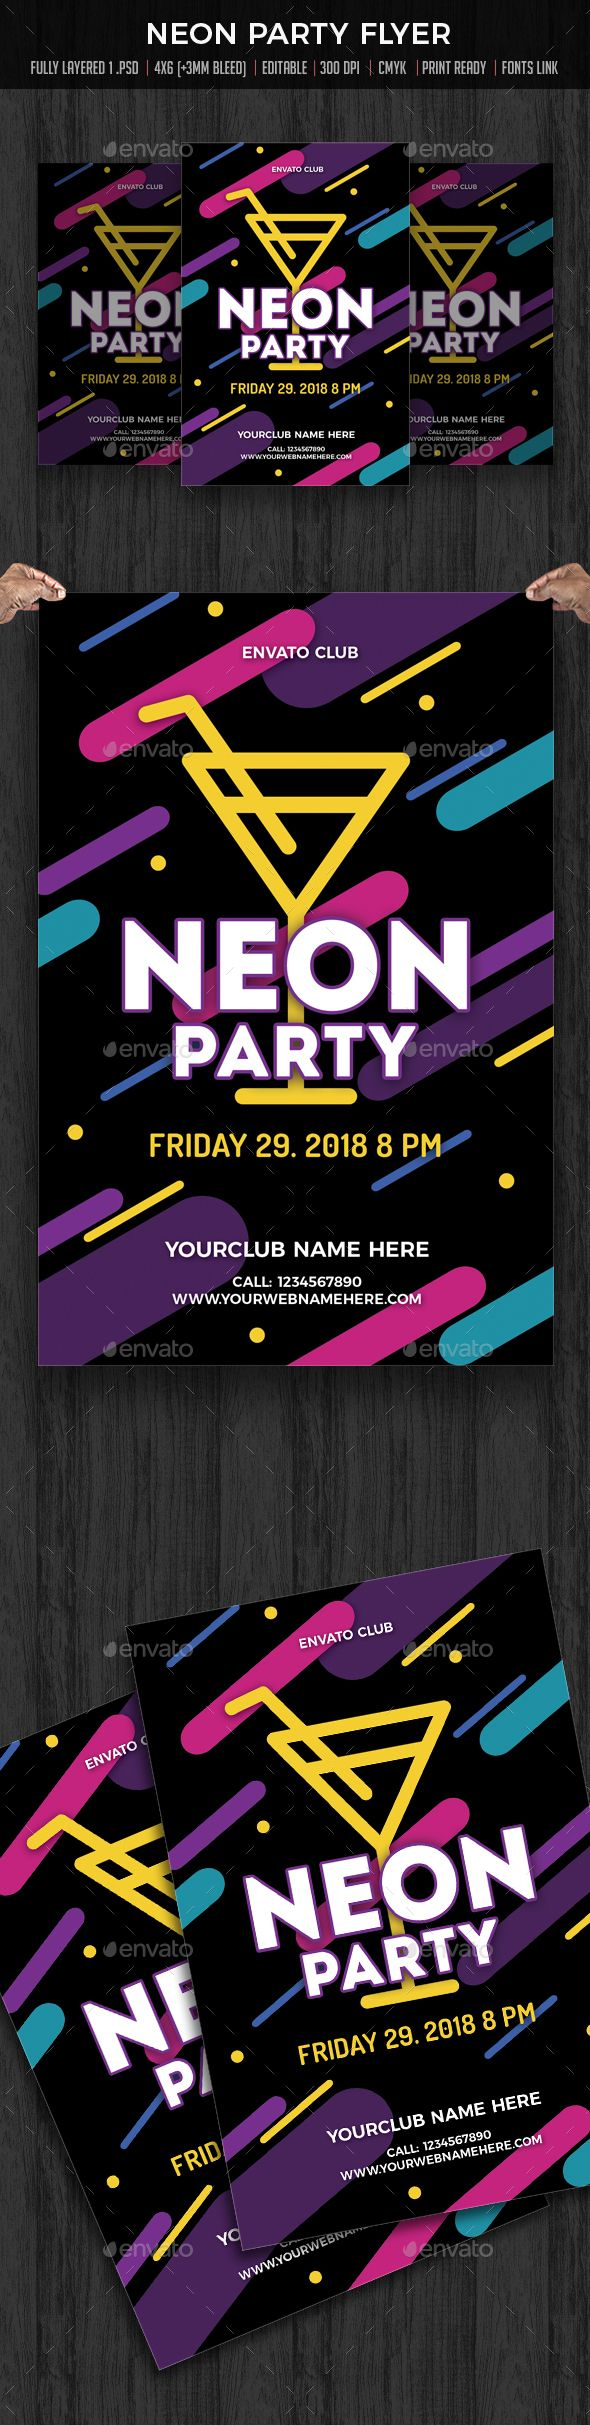 Neon Party  Cocktail Party  Neon Party Neon And Flyer Template